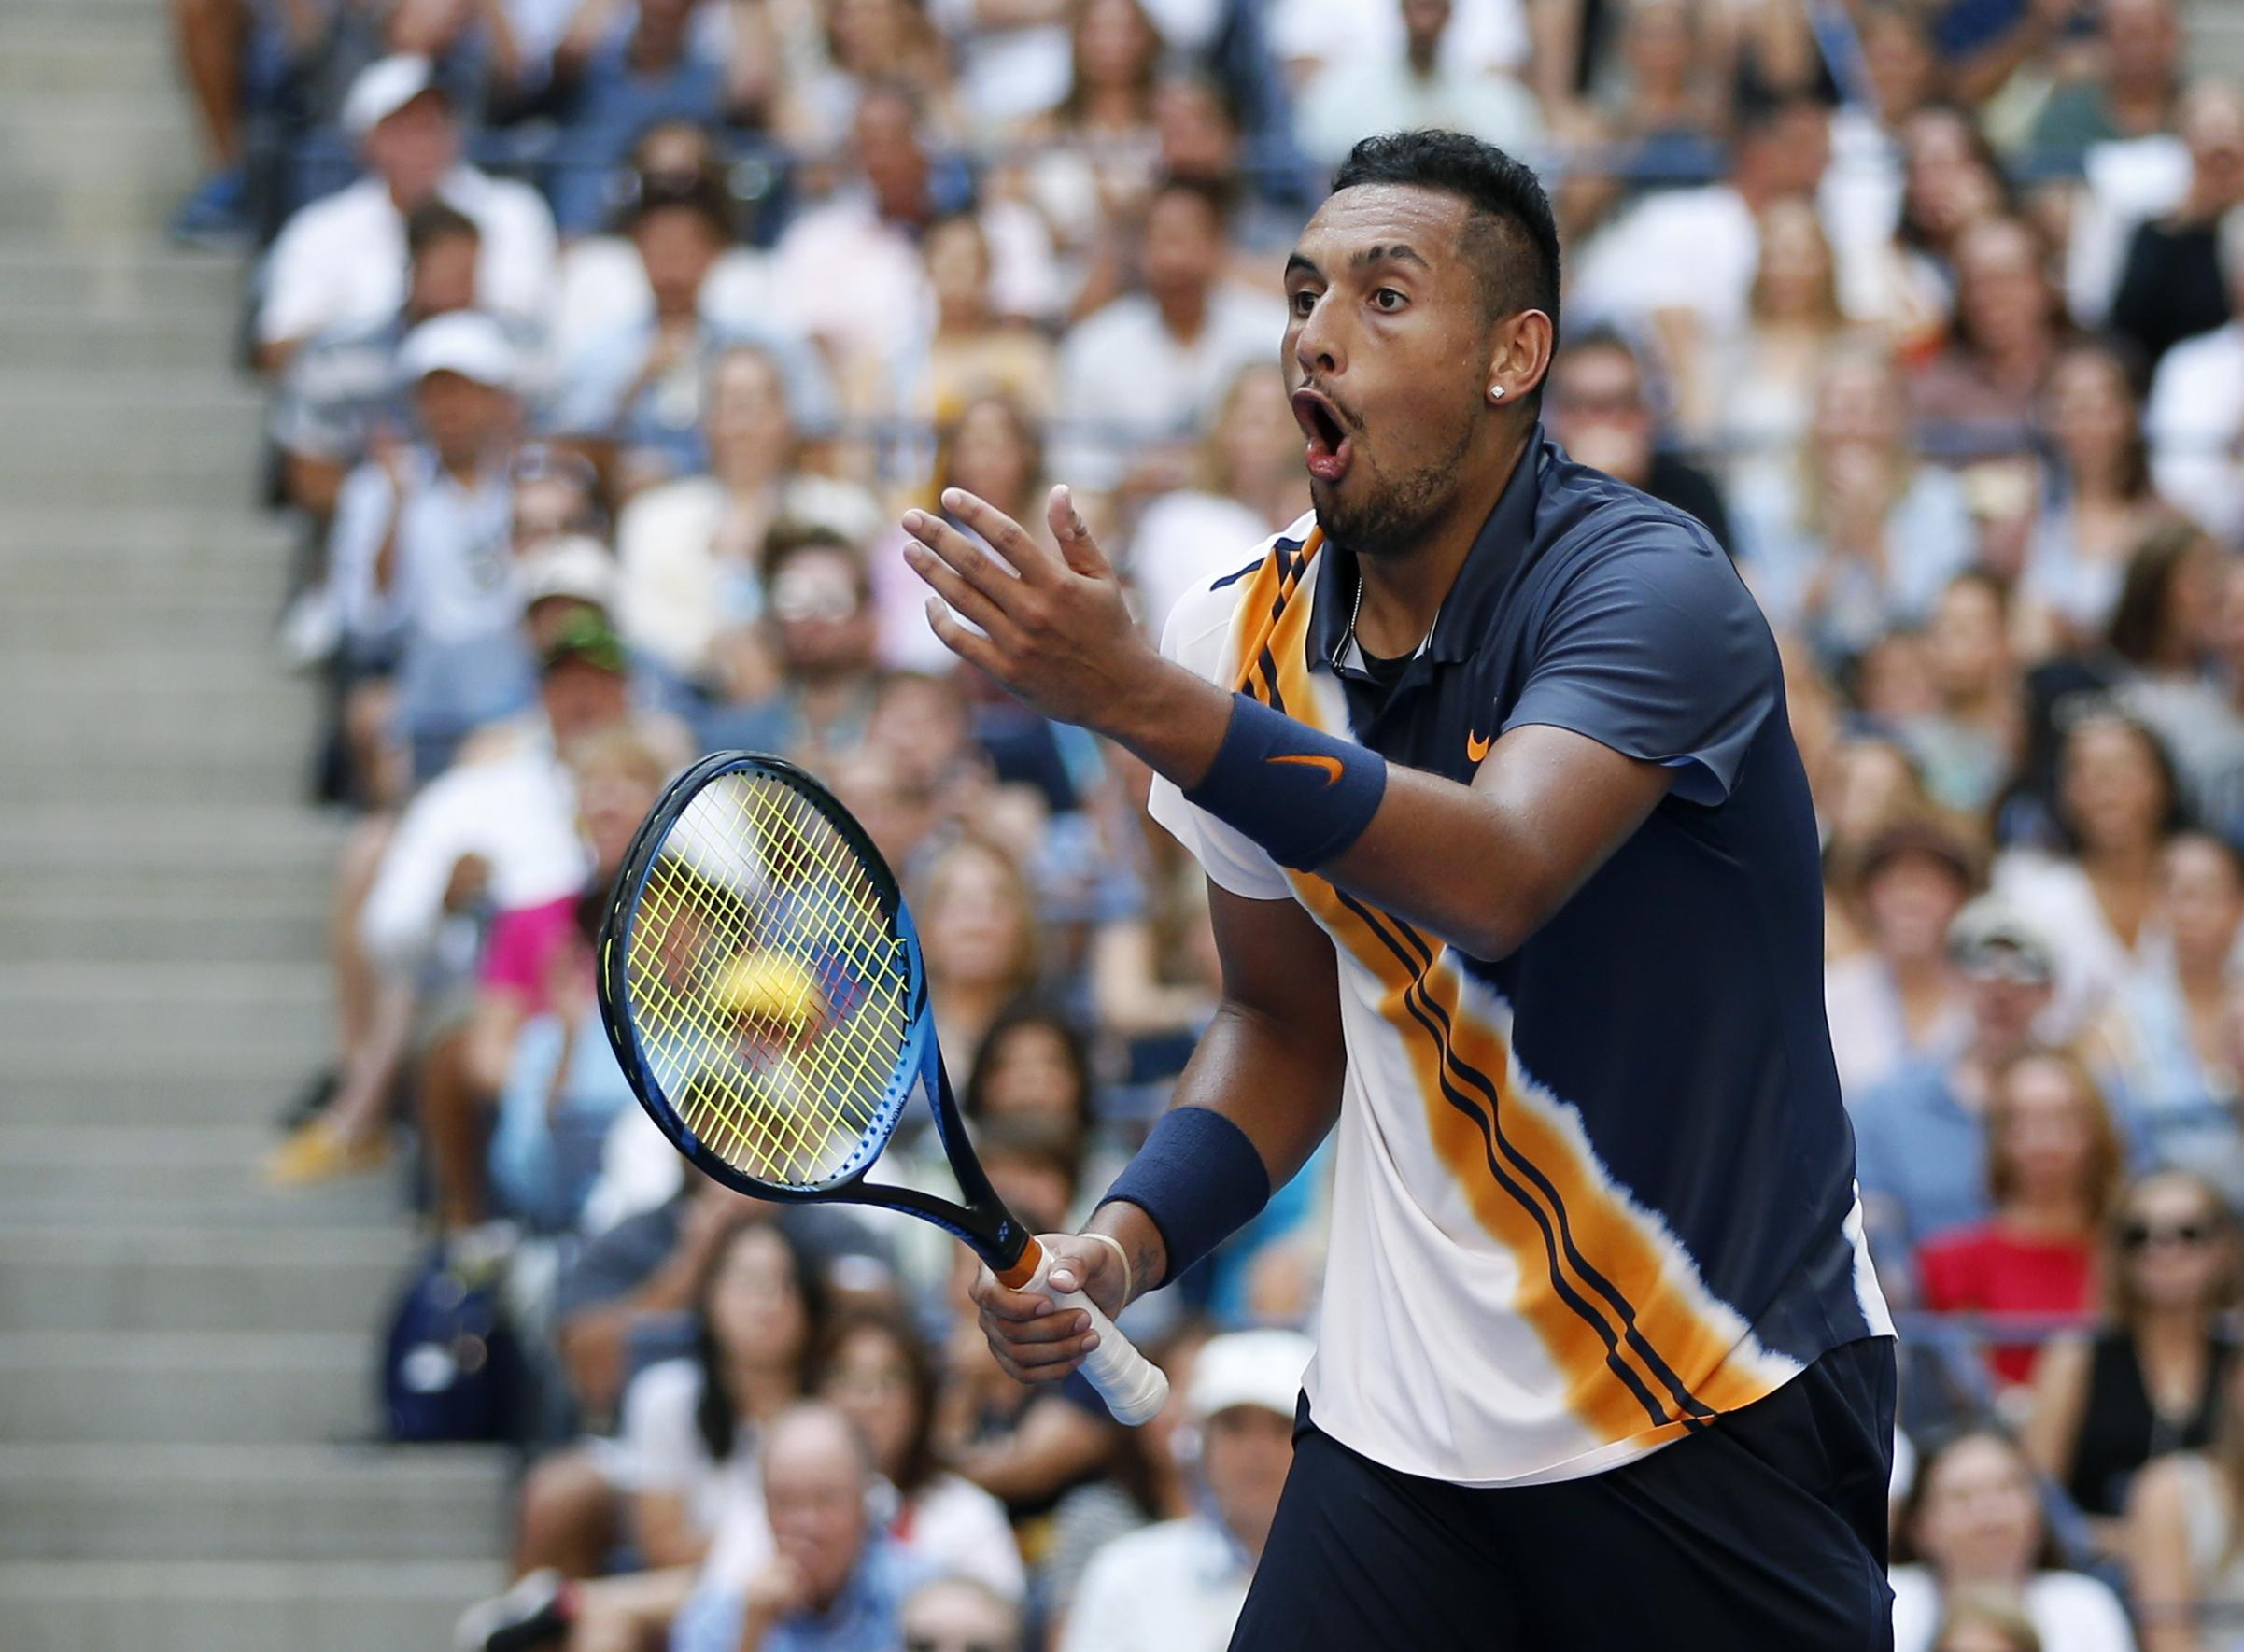 Kyrgios could scarcely believe the shot, one that the Australian himself would have been proud of